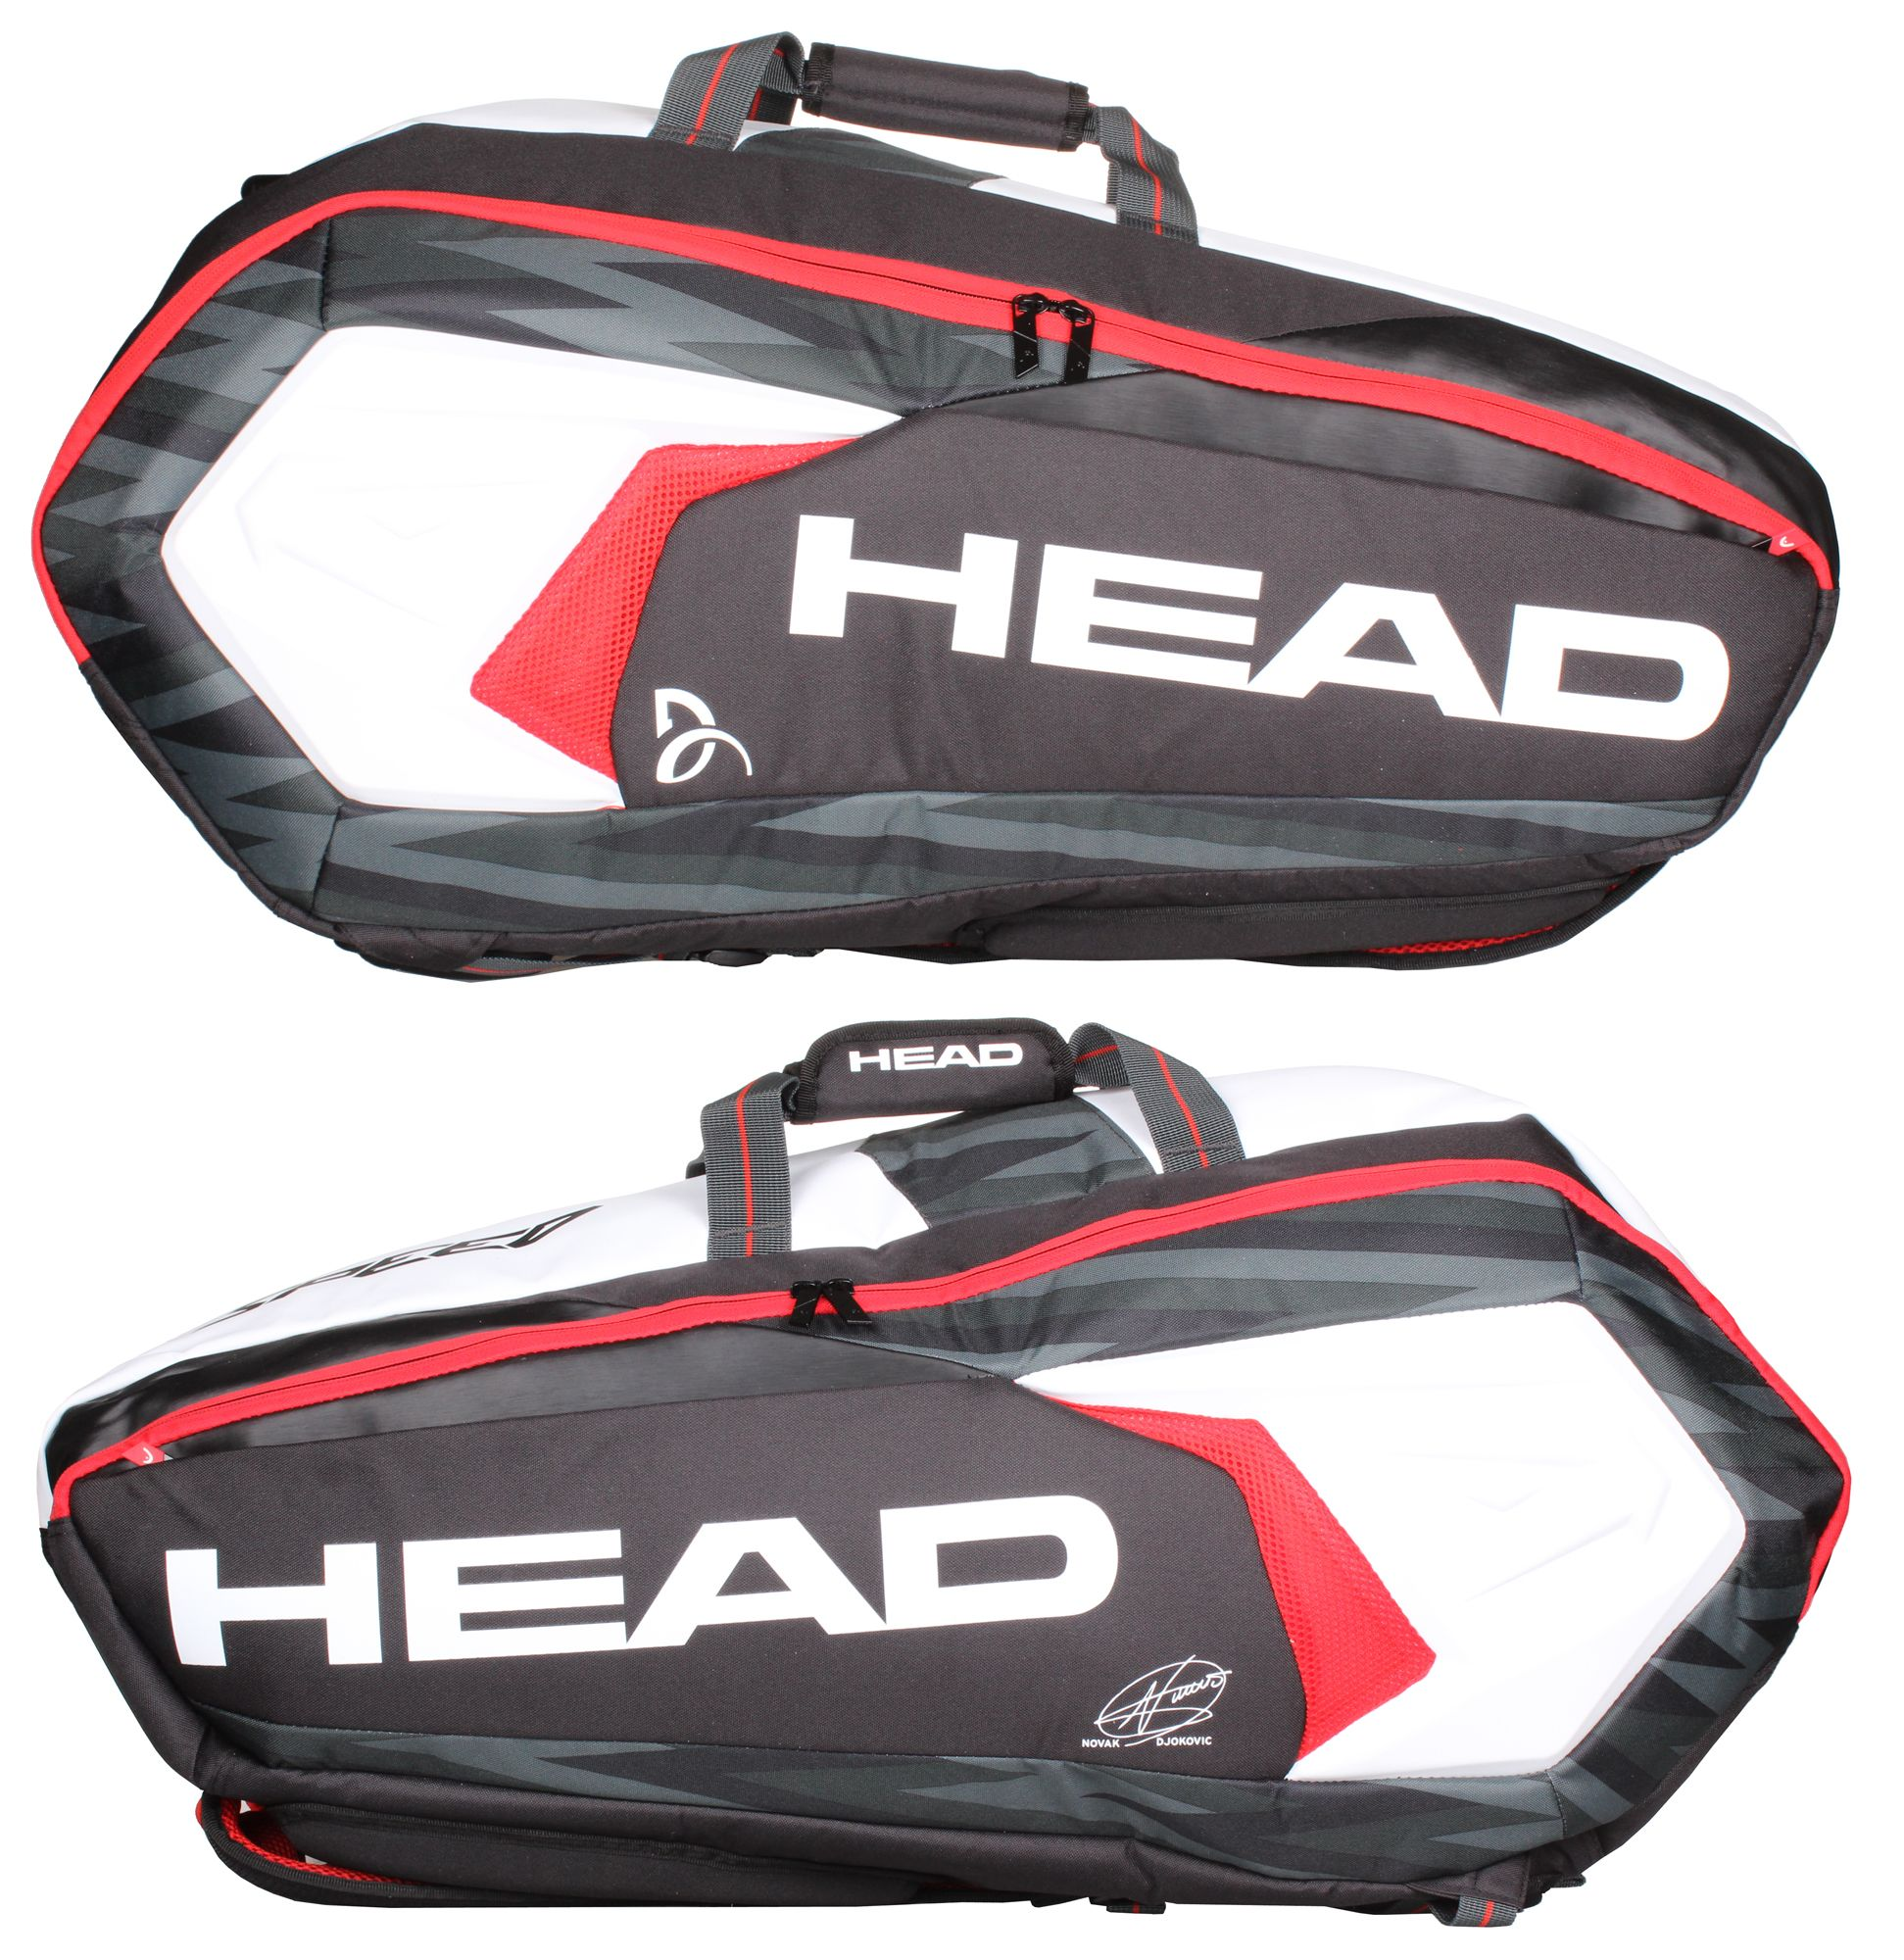 Finding The Comfortable Tennis Racquet Bag In 2020 With Images Tennis Racquet Bag Tennis Bags Racquet Bag